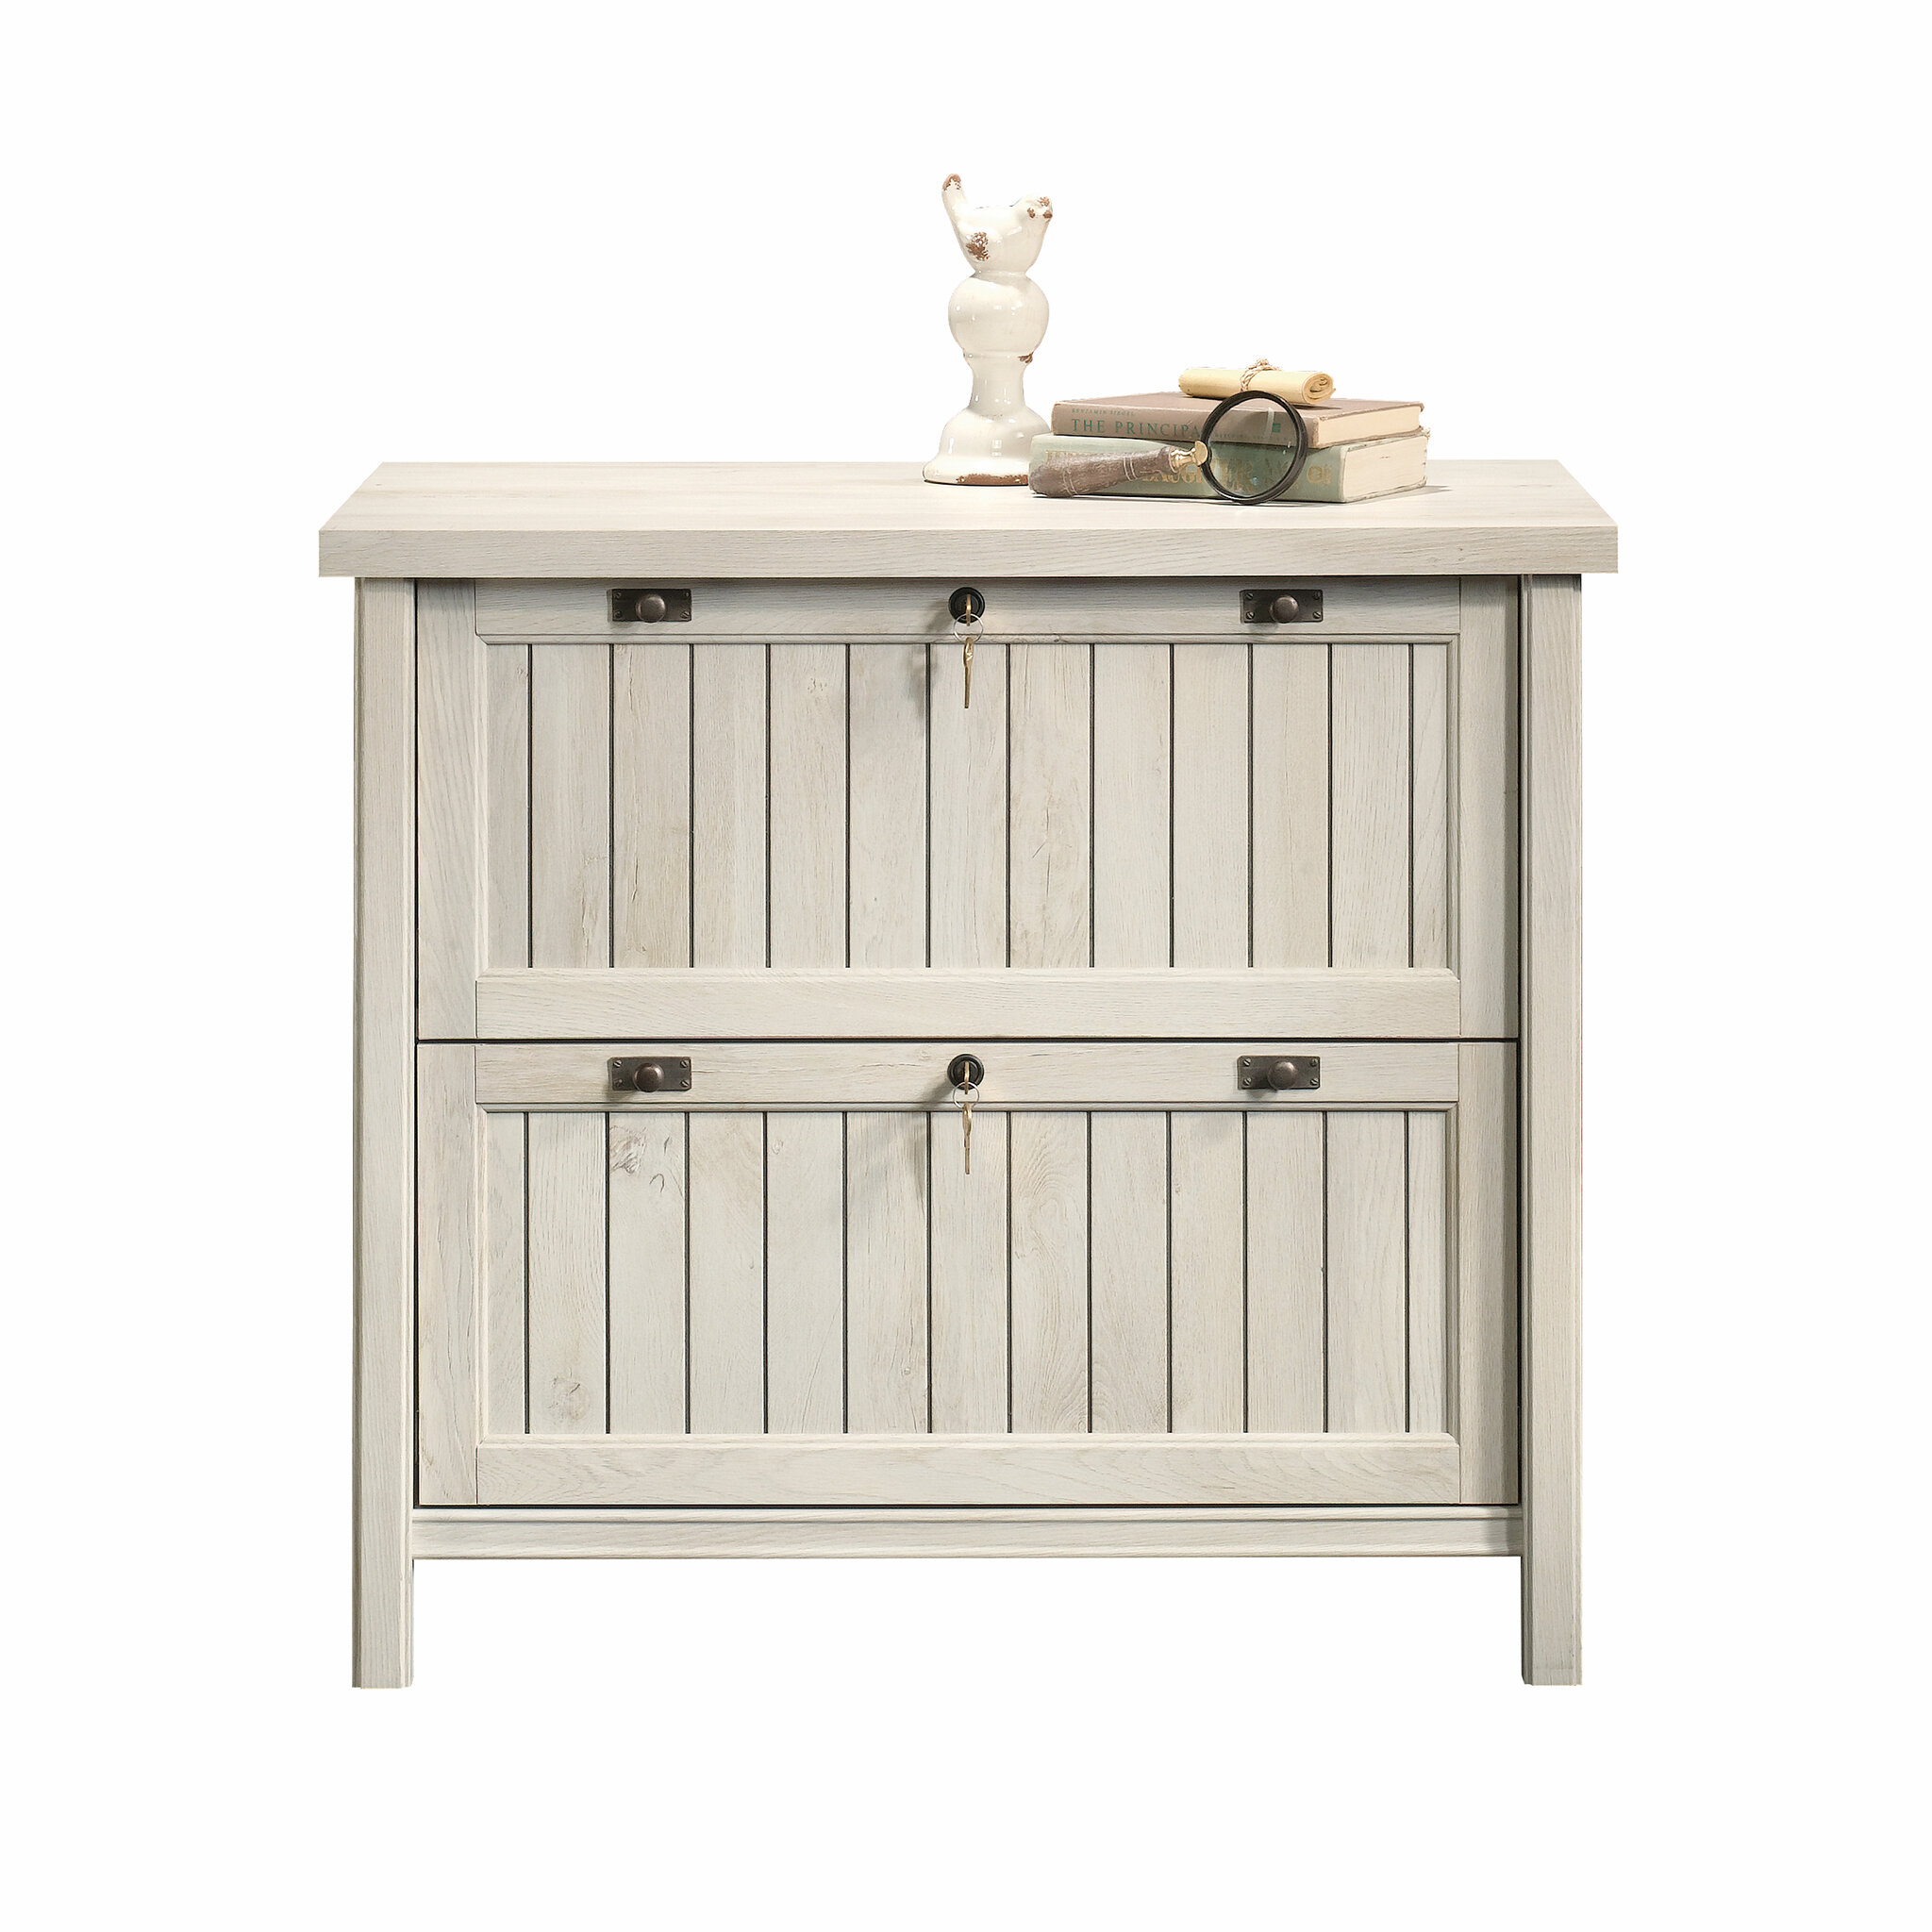 Bruno 45-Drawer Lateral Filing Cabinet